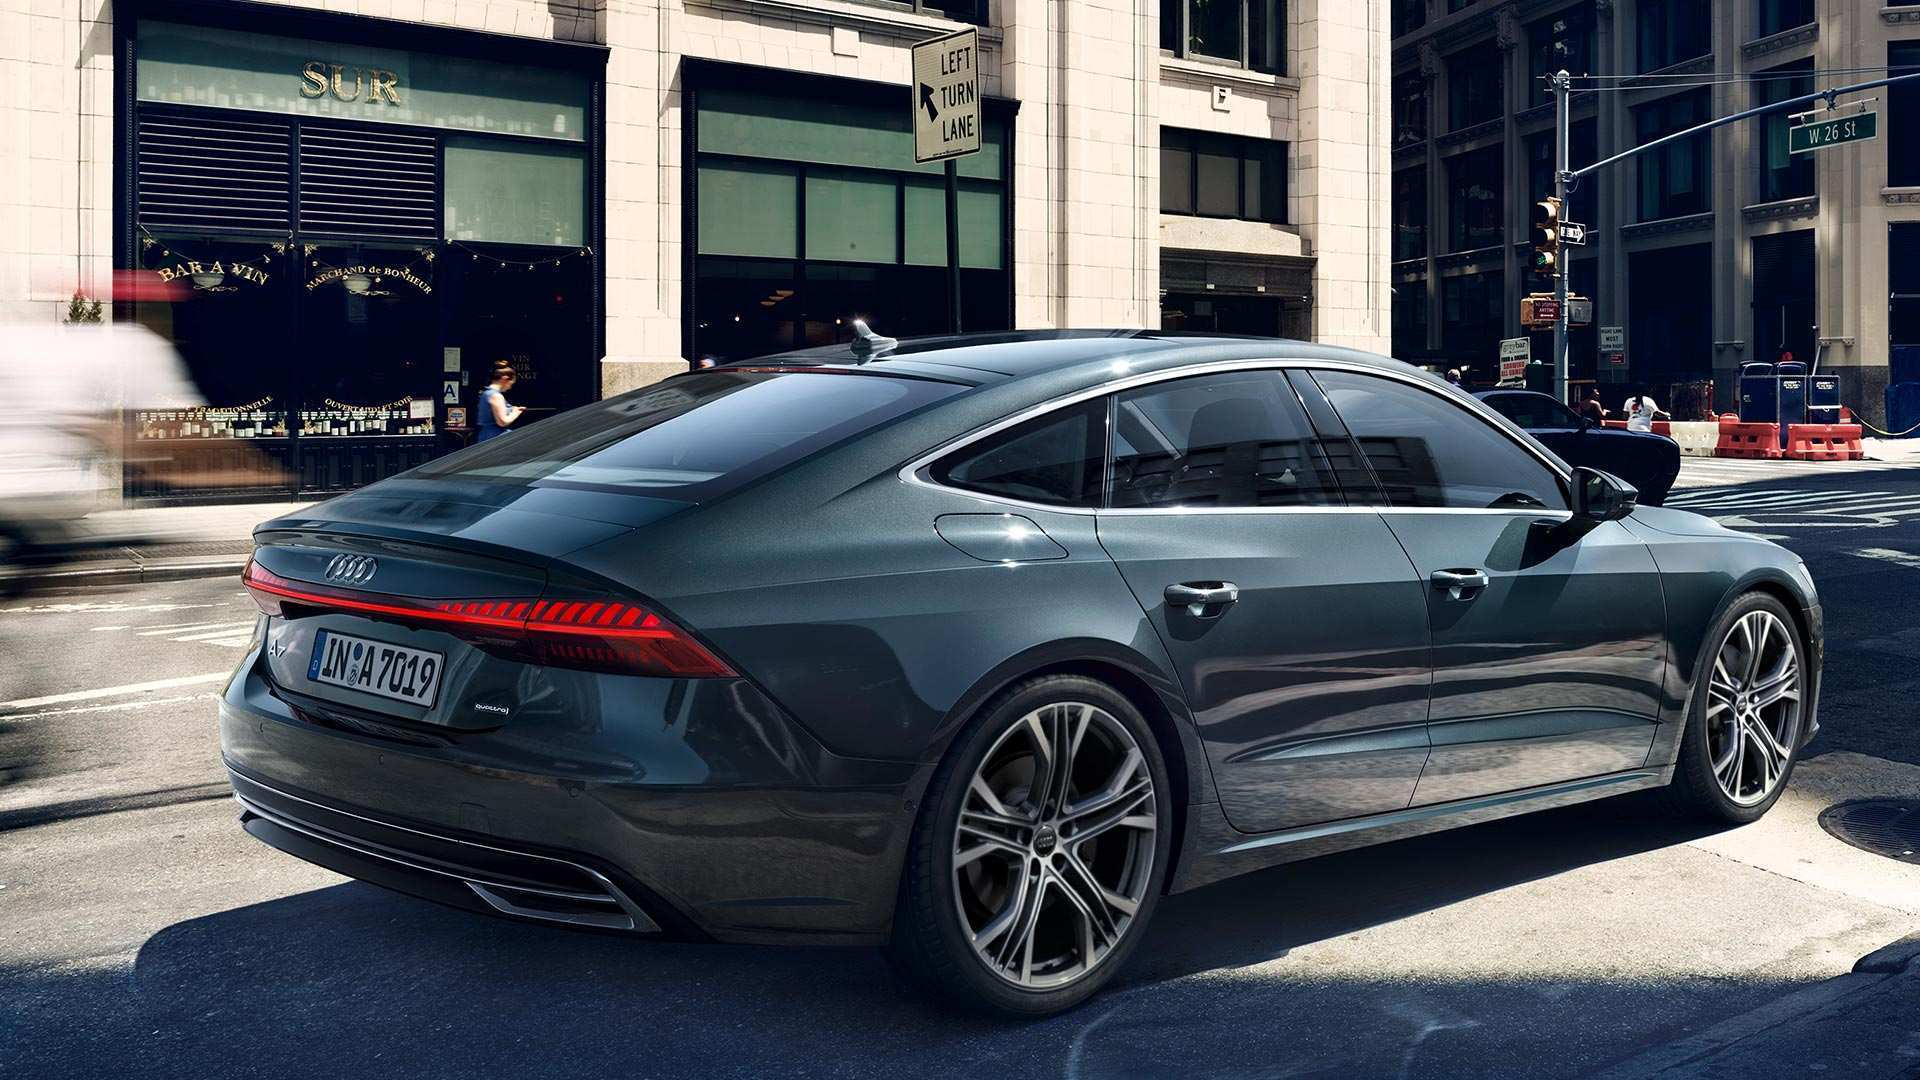 86 All New 2020 All Audi A7 Exterior